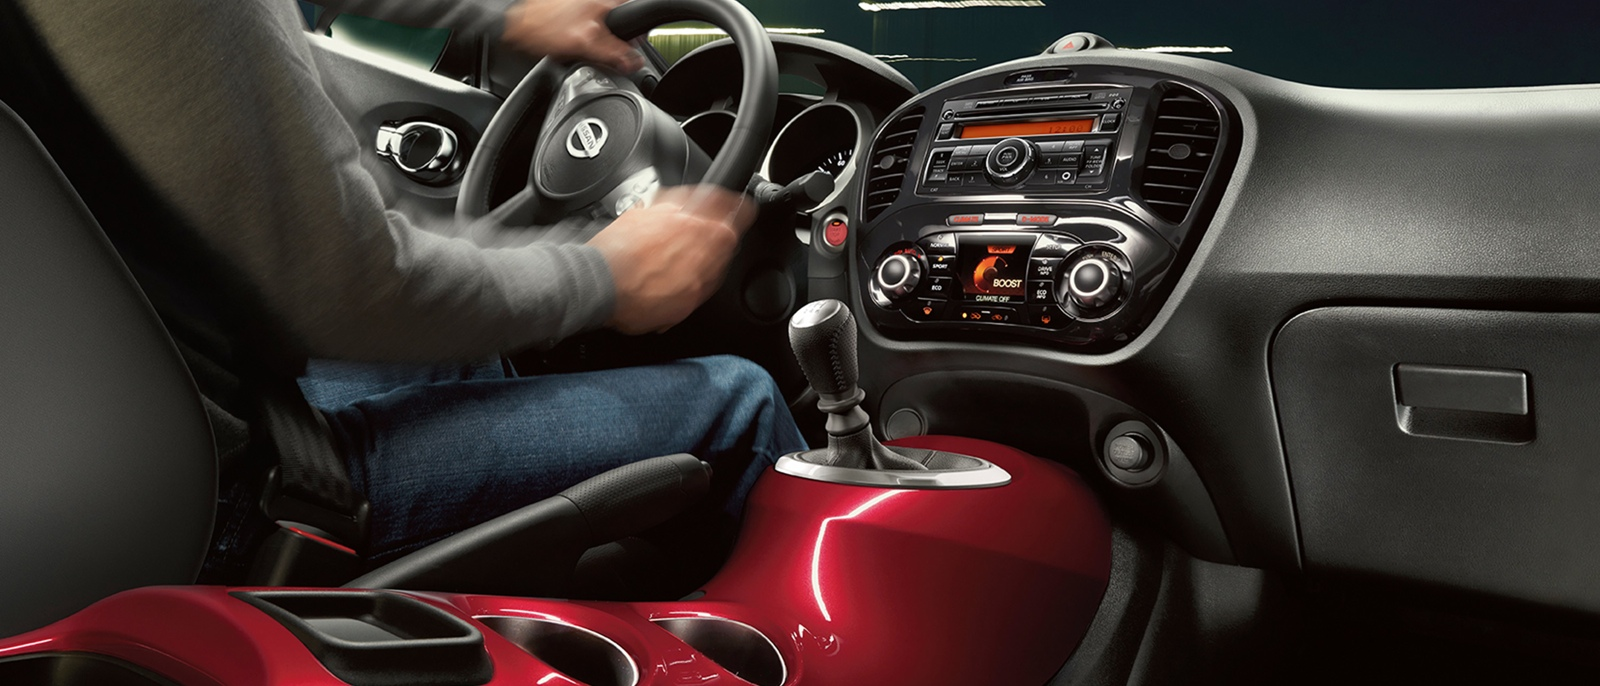 nissan says juke review wired the s